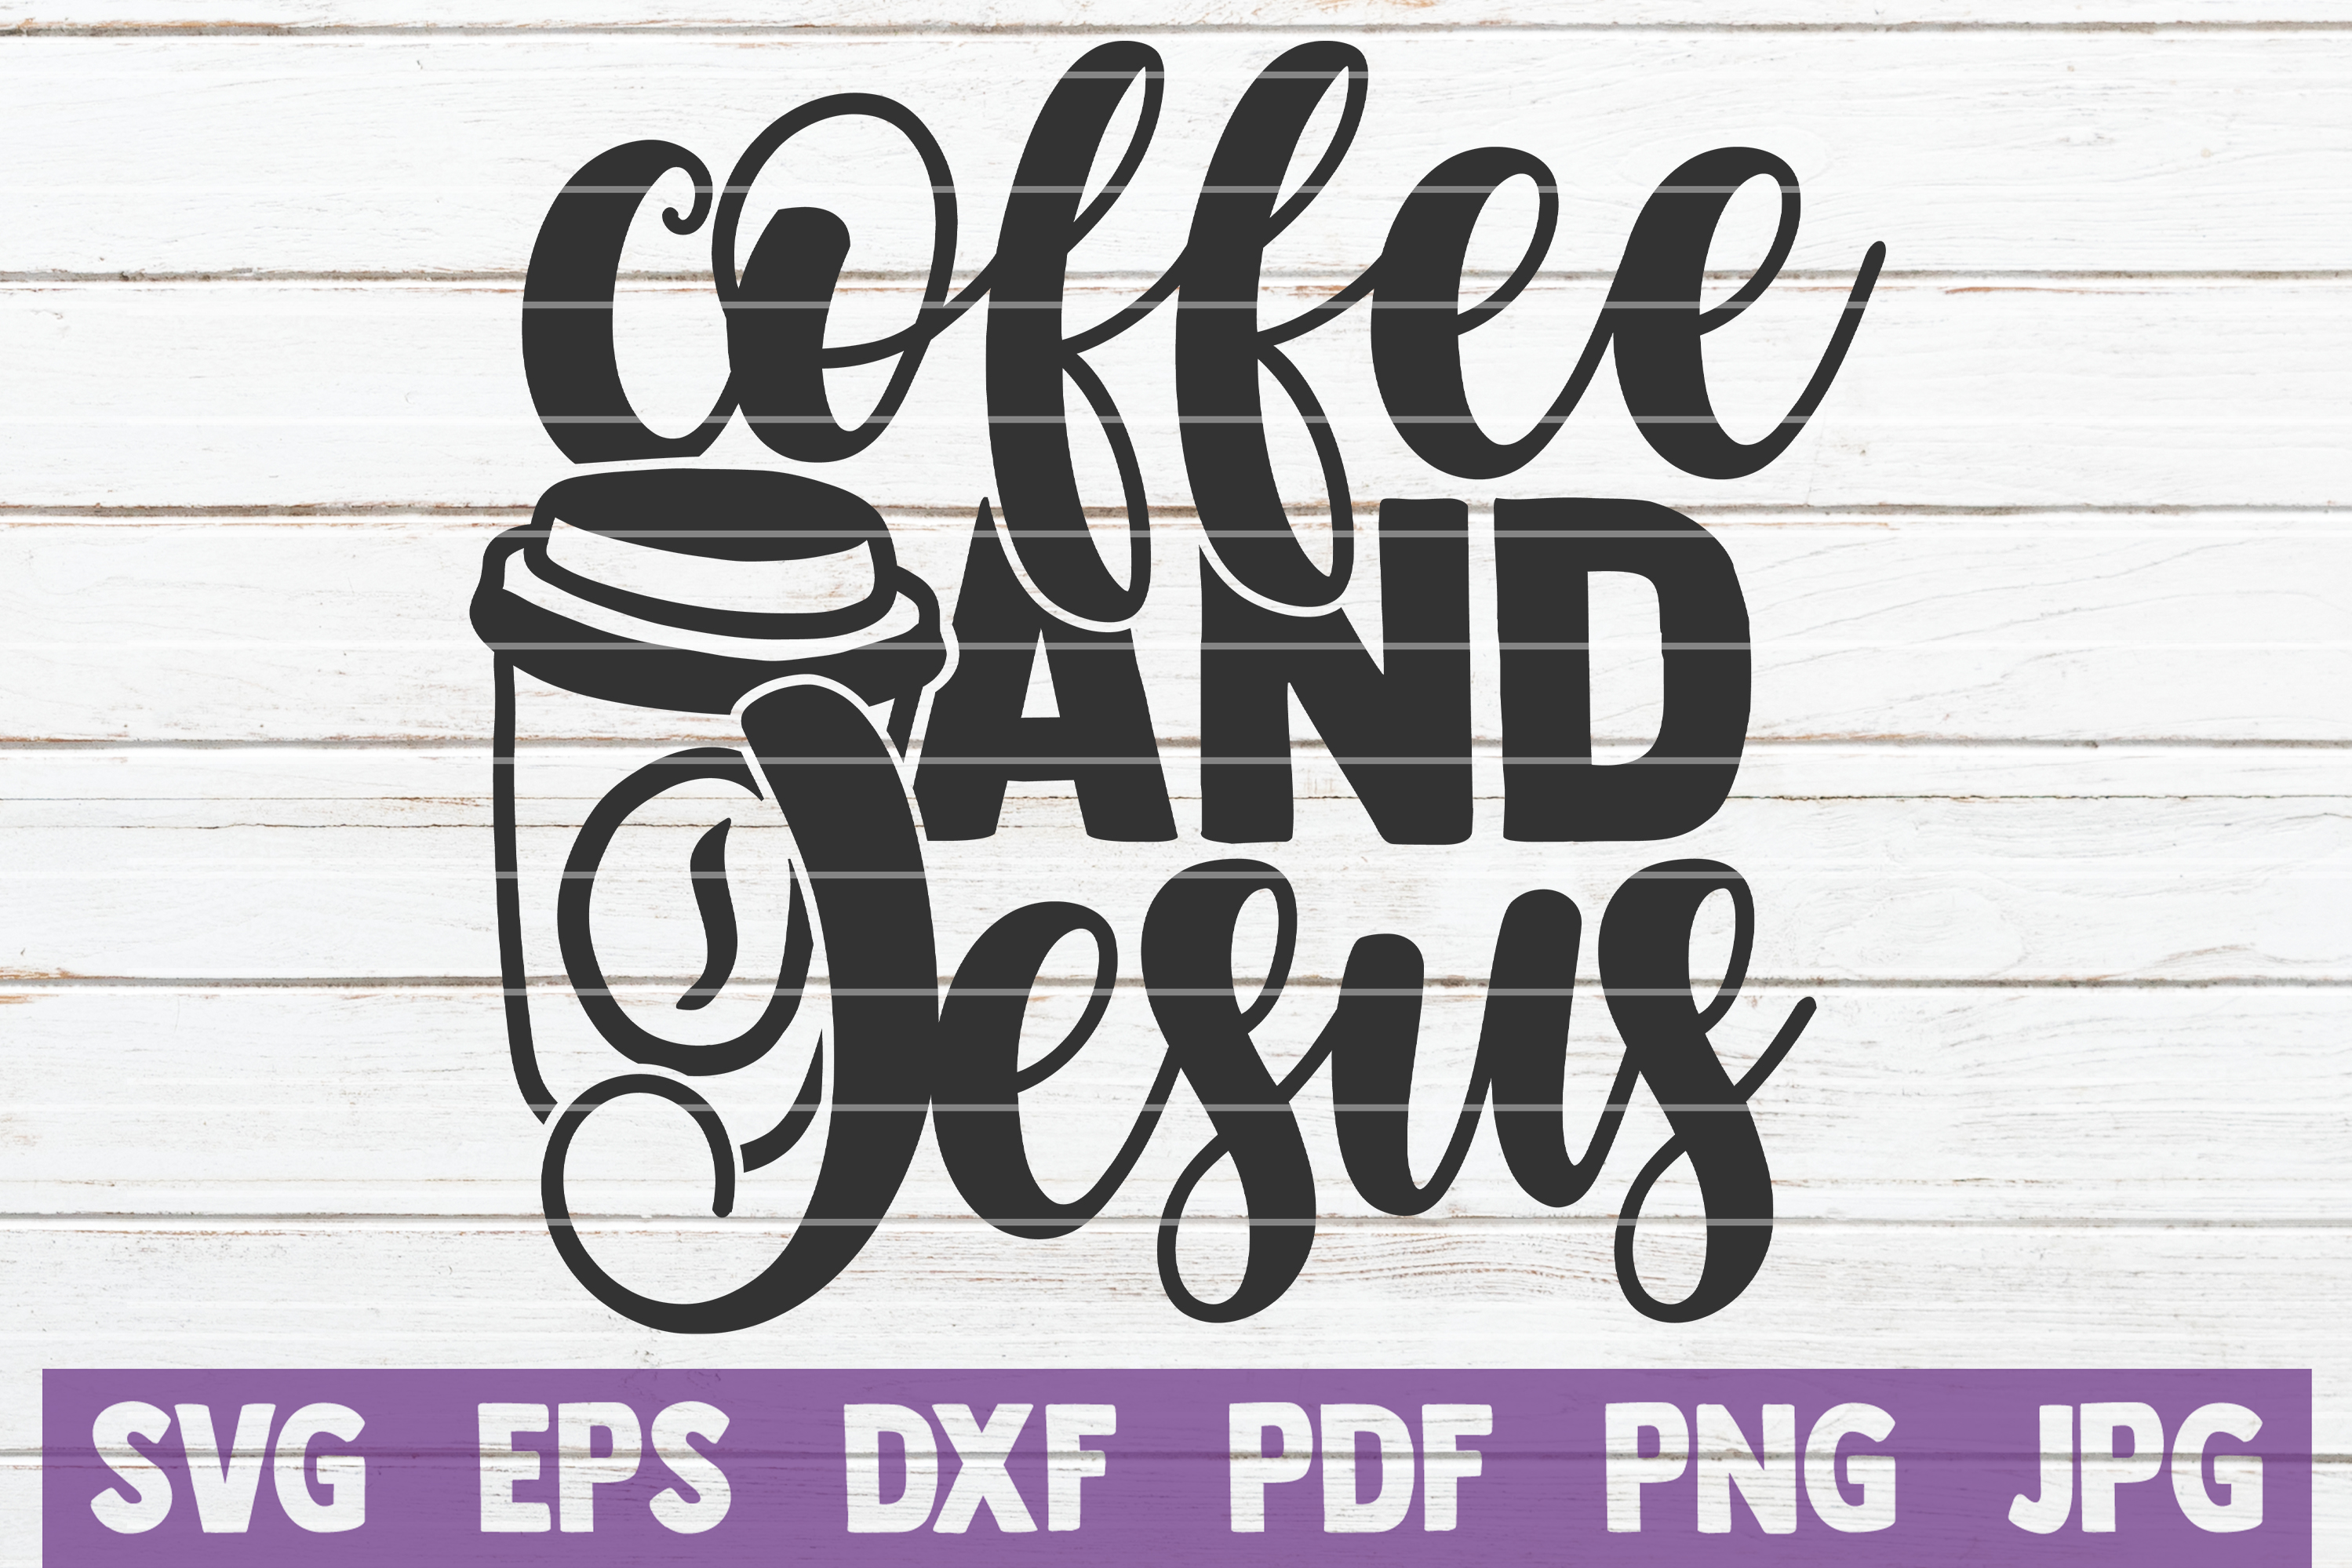 Download Free Coffee And Jesus Graphic By Mintymarshmallows Creative Fabrica for Cricut Explore, Silhouette and other cutting machines.